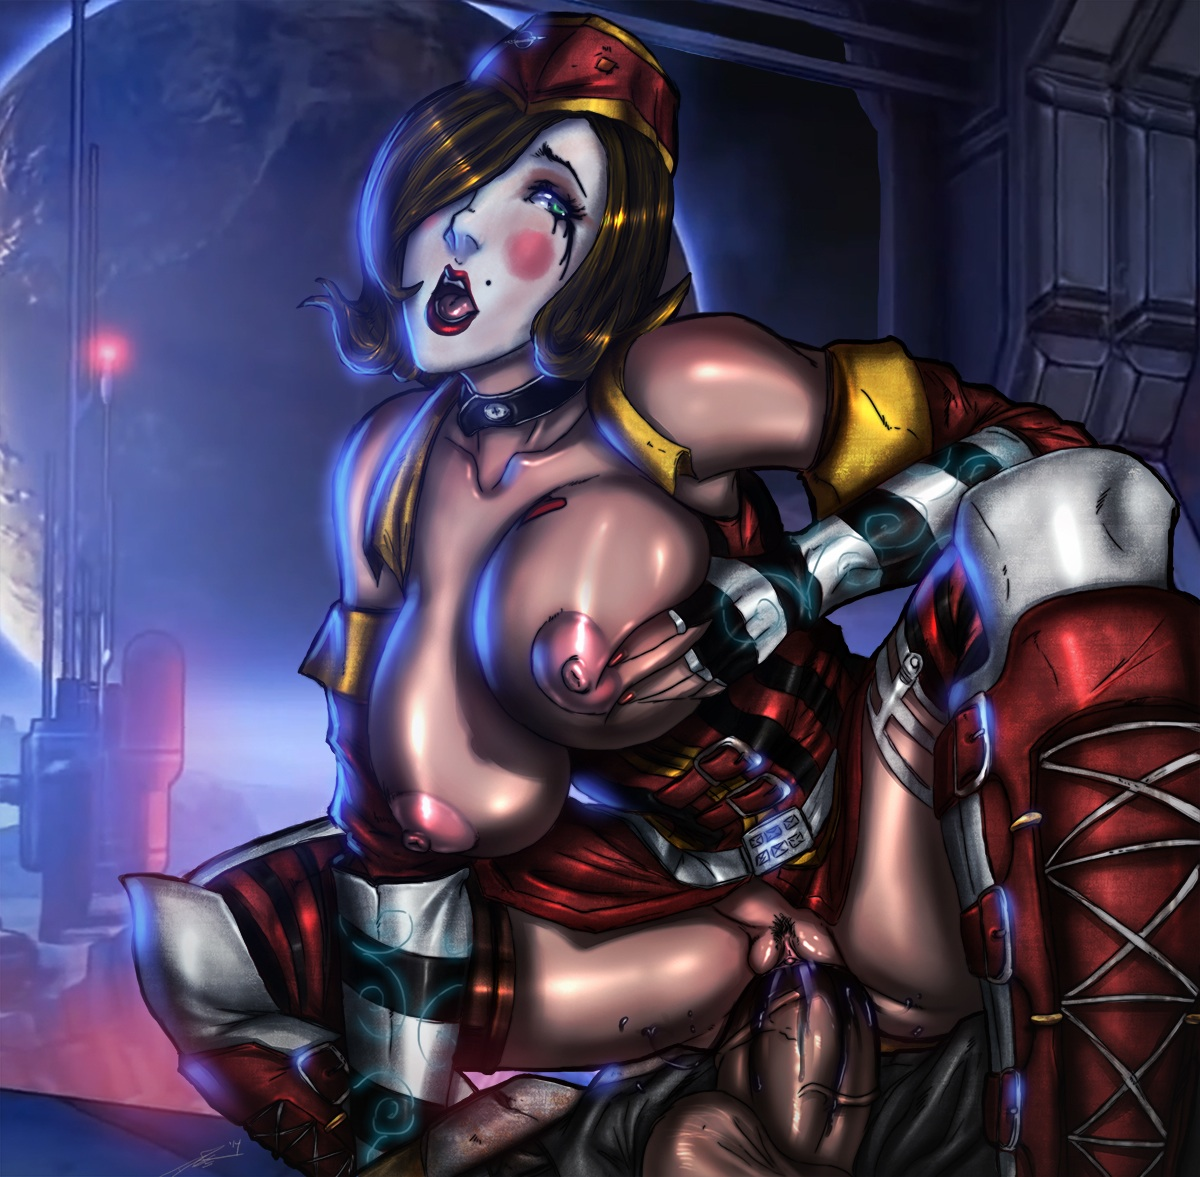 Borderlands porn pic gallery sex video